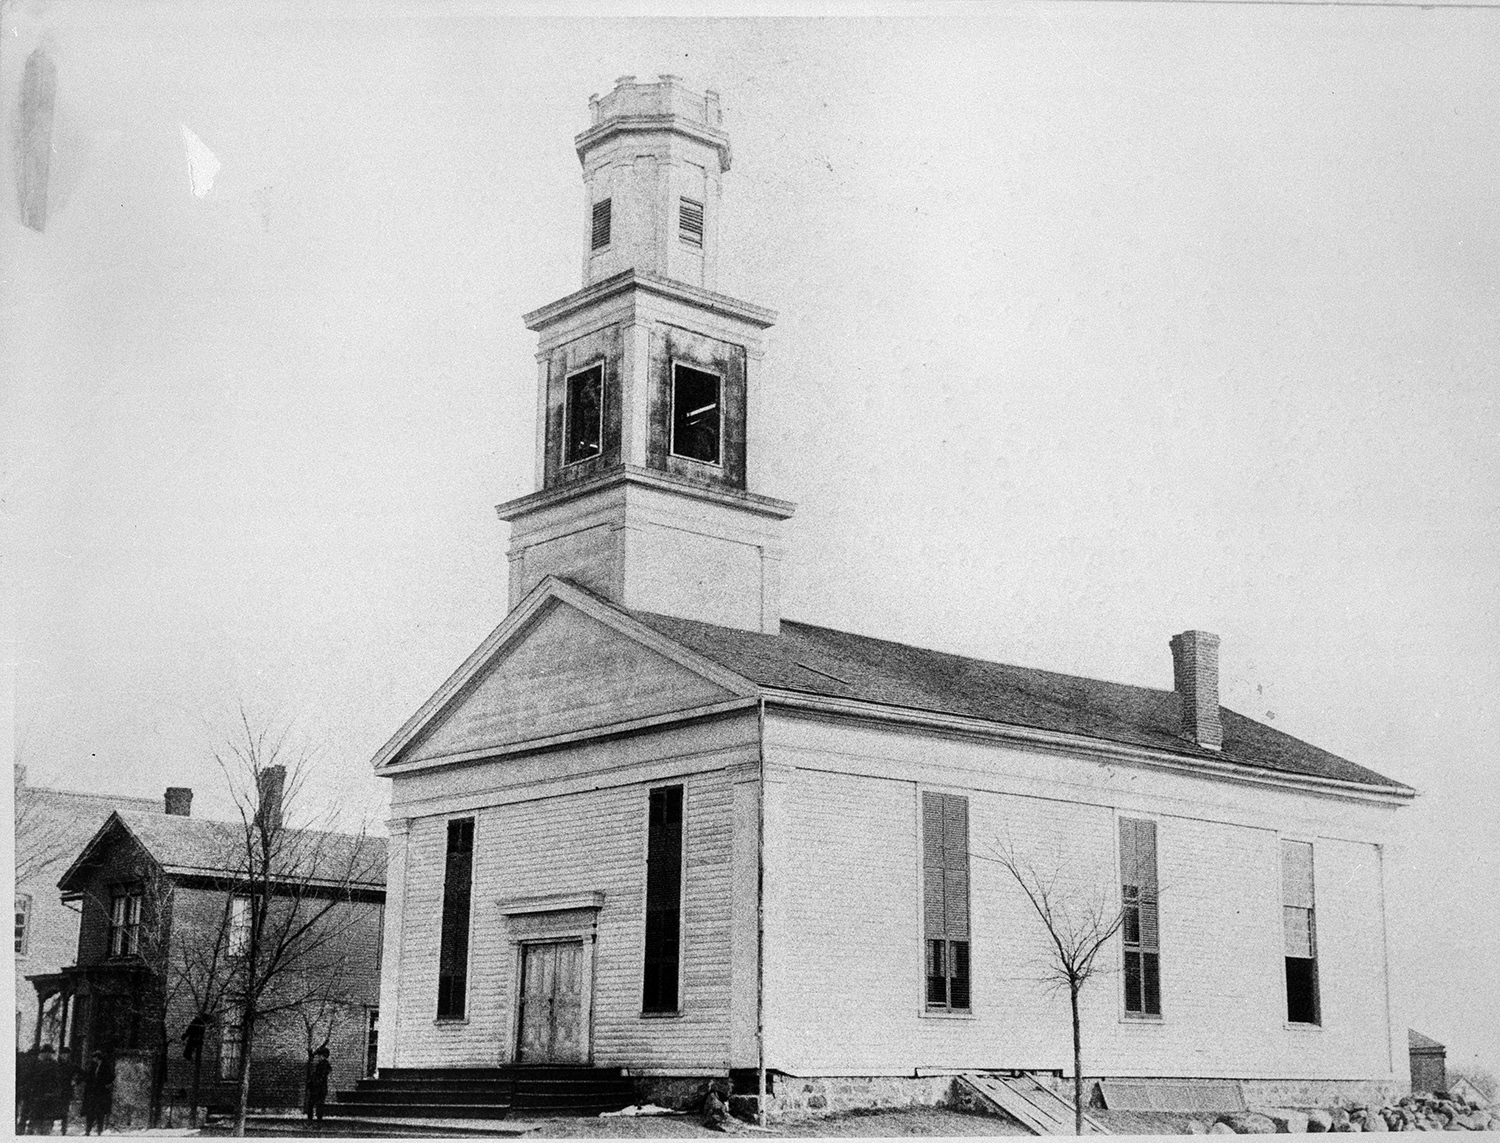 "The Methodist church at Ann Arbor and Henry Streets, 1857-1899""The Methodist Episcopal Church was built in 1837 on the corner of S. Ann Arbor and Henry Street. The house alongside to the north was the parsonage. Photo coutesy of the Saline Area Historical Society"